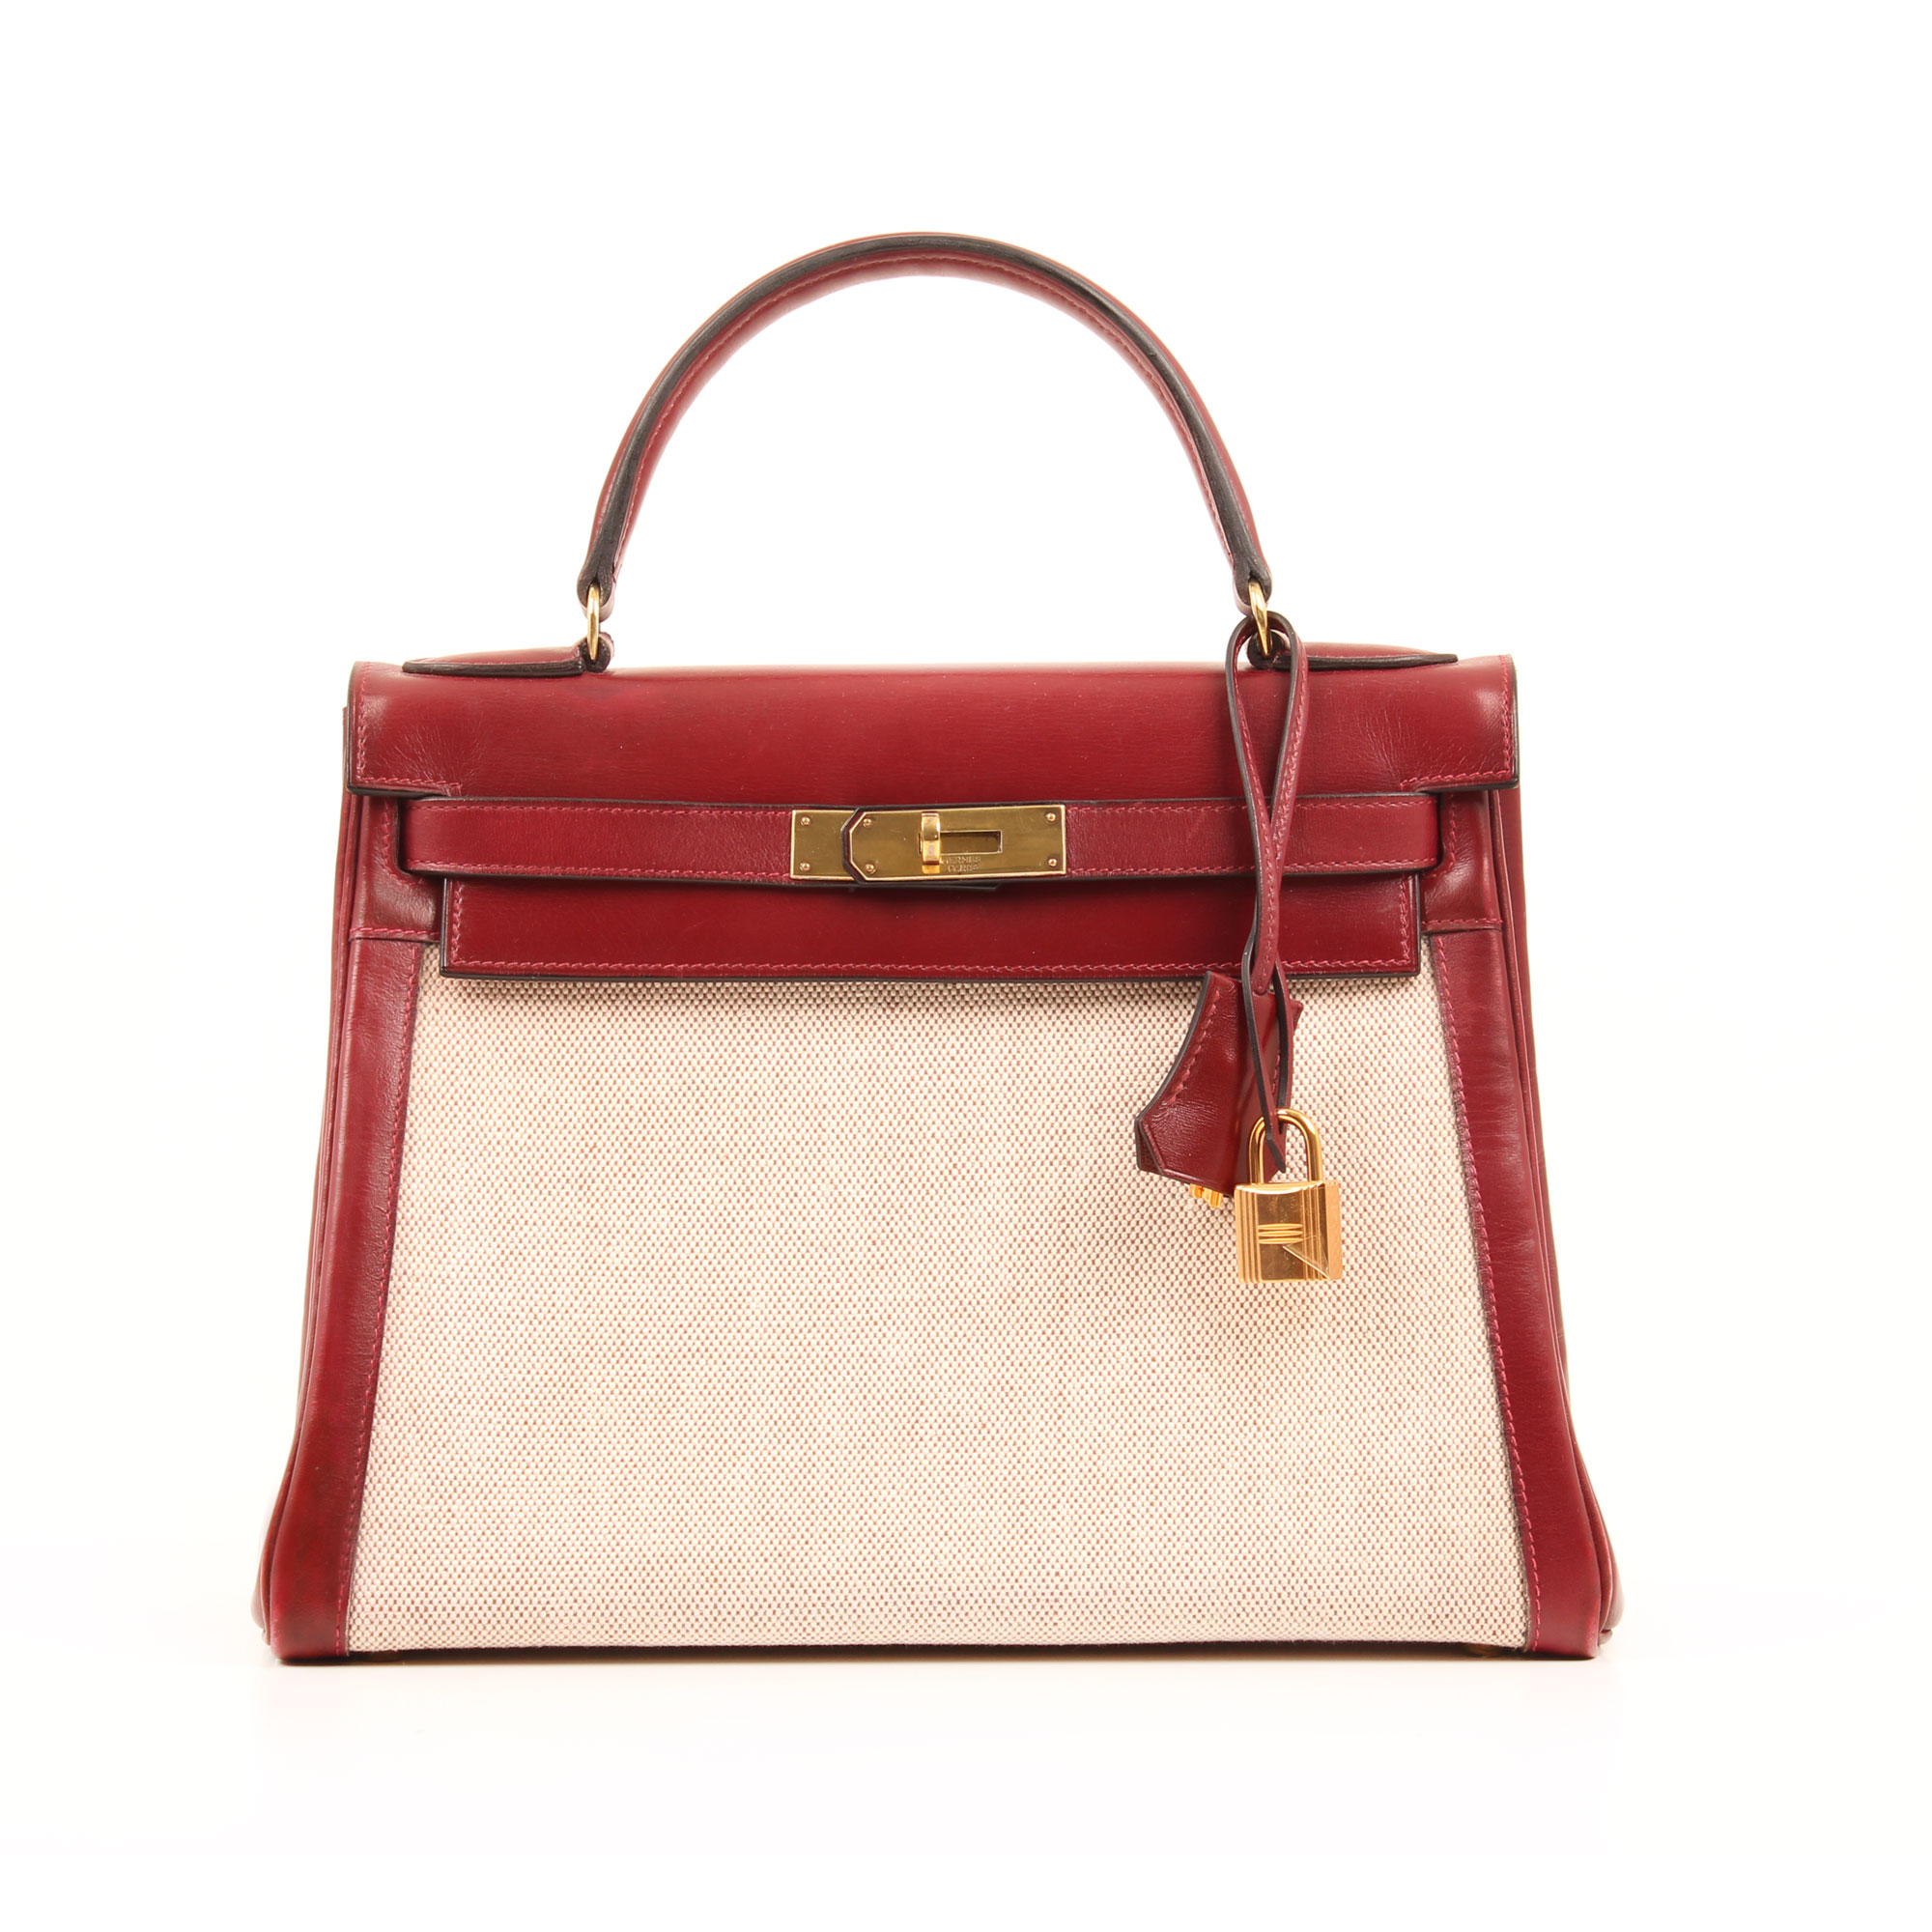 Frontal image of hermes kelly 28 canvas leather burgundy bag